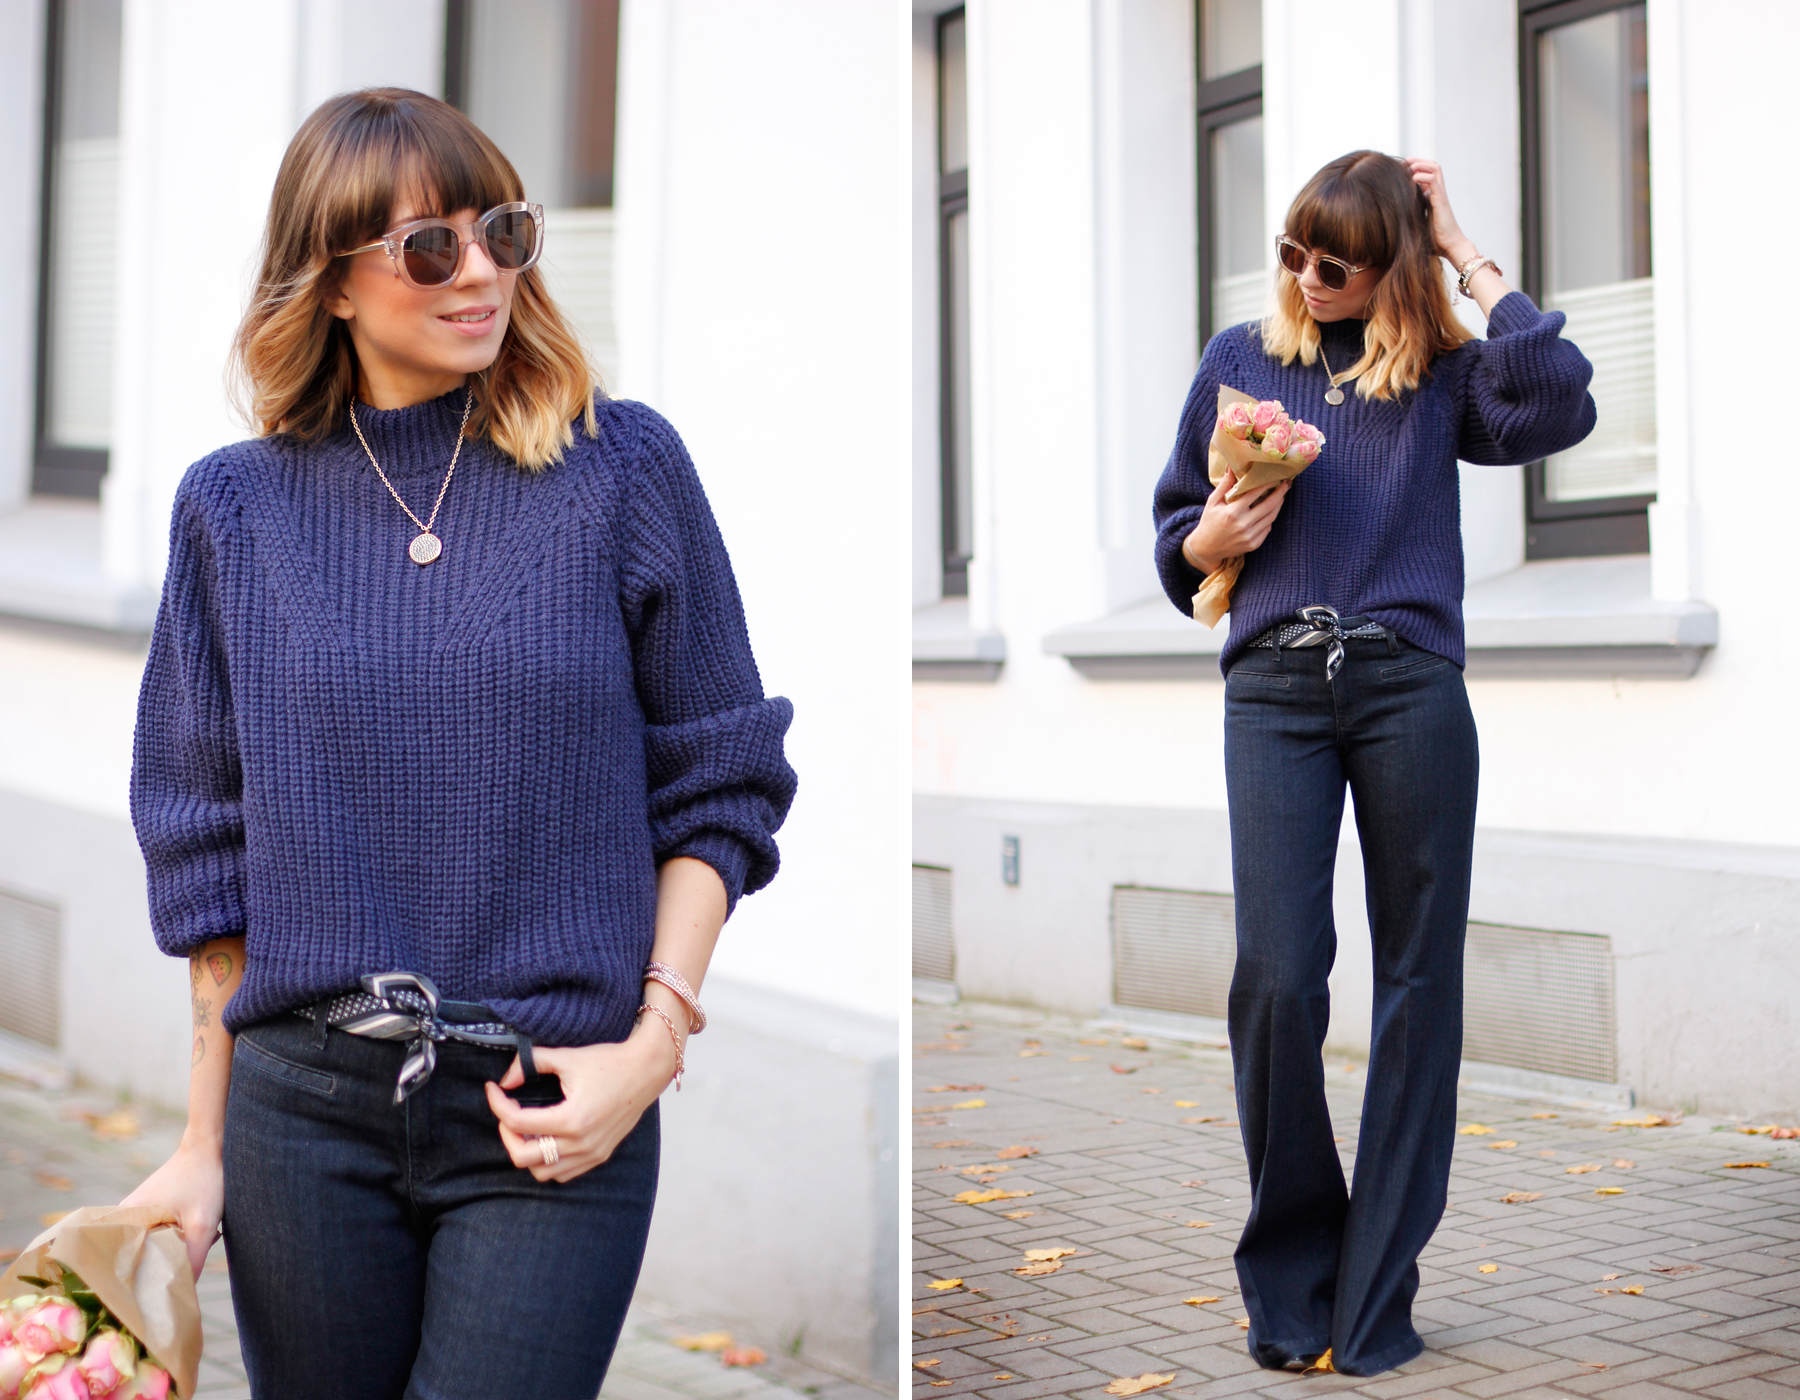 edited knit AG jeans lespecs sunglasses pippa and jean accessories outfit ootd fashionblogger cats & dogs ricarda schernus blue outfit sailor french blog 1